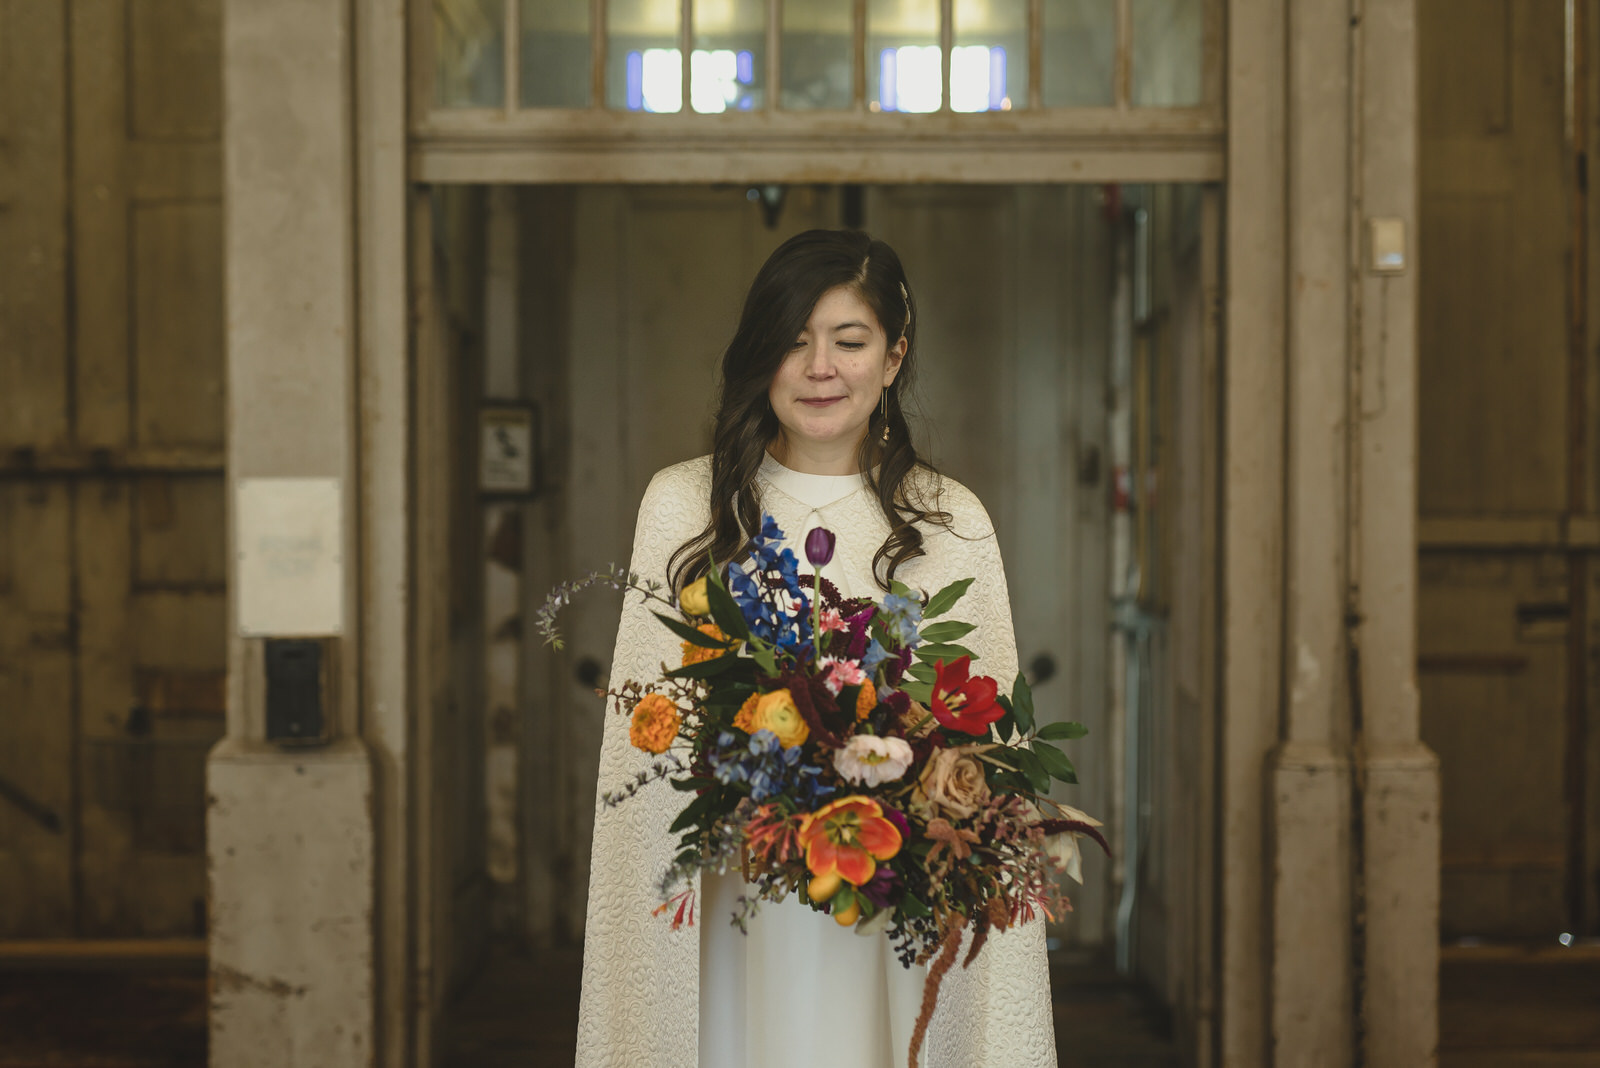 Bride with colorful bouquet. Photo by The Swansons